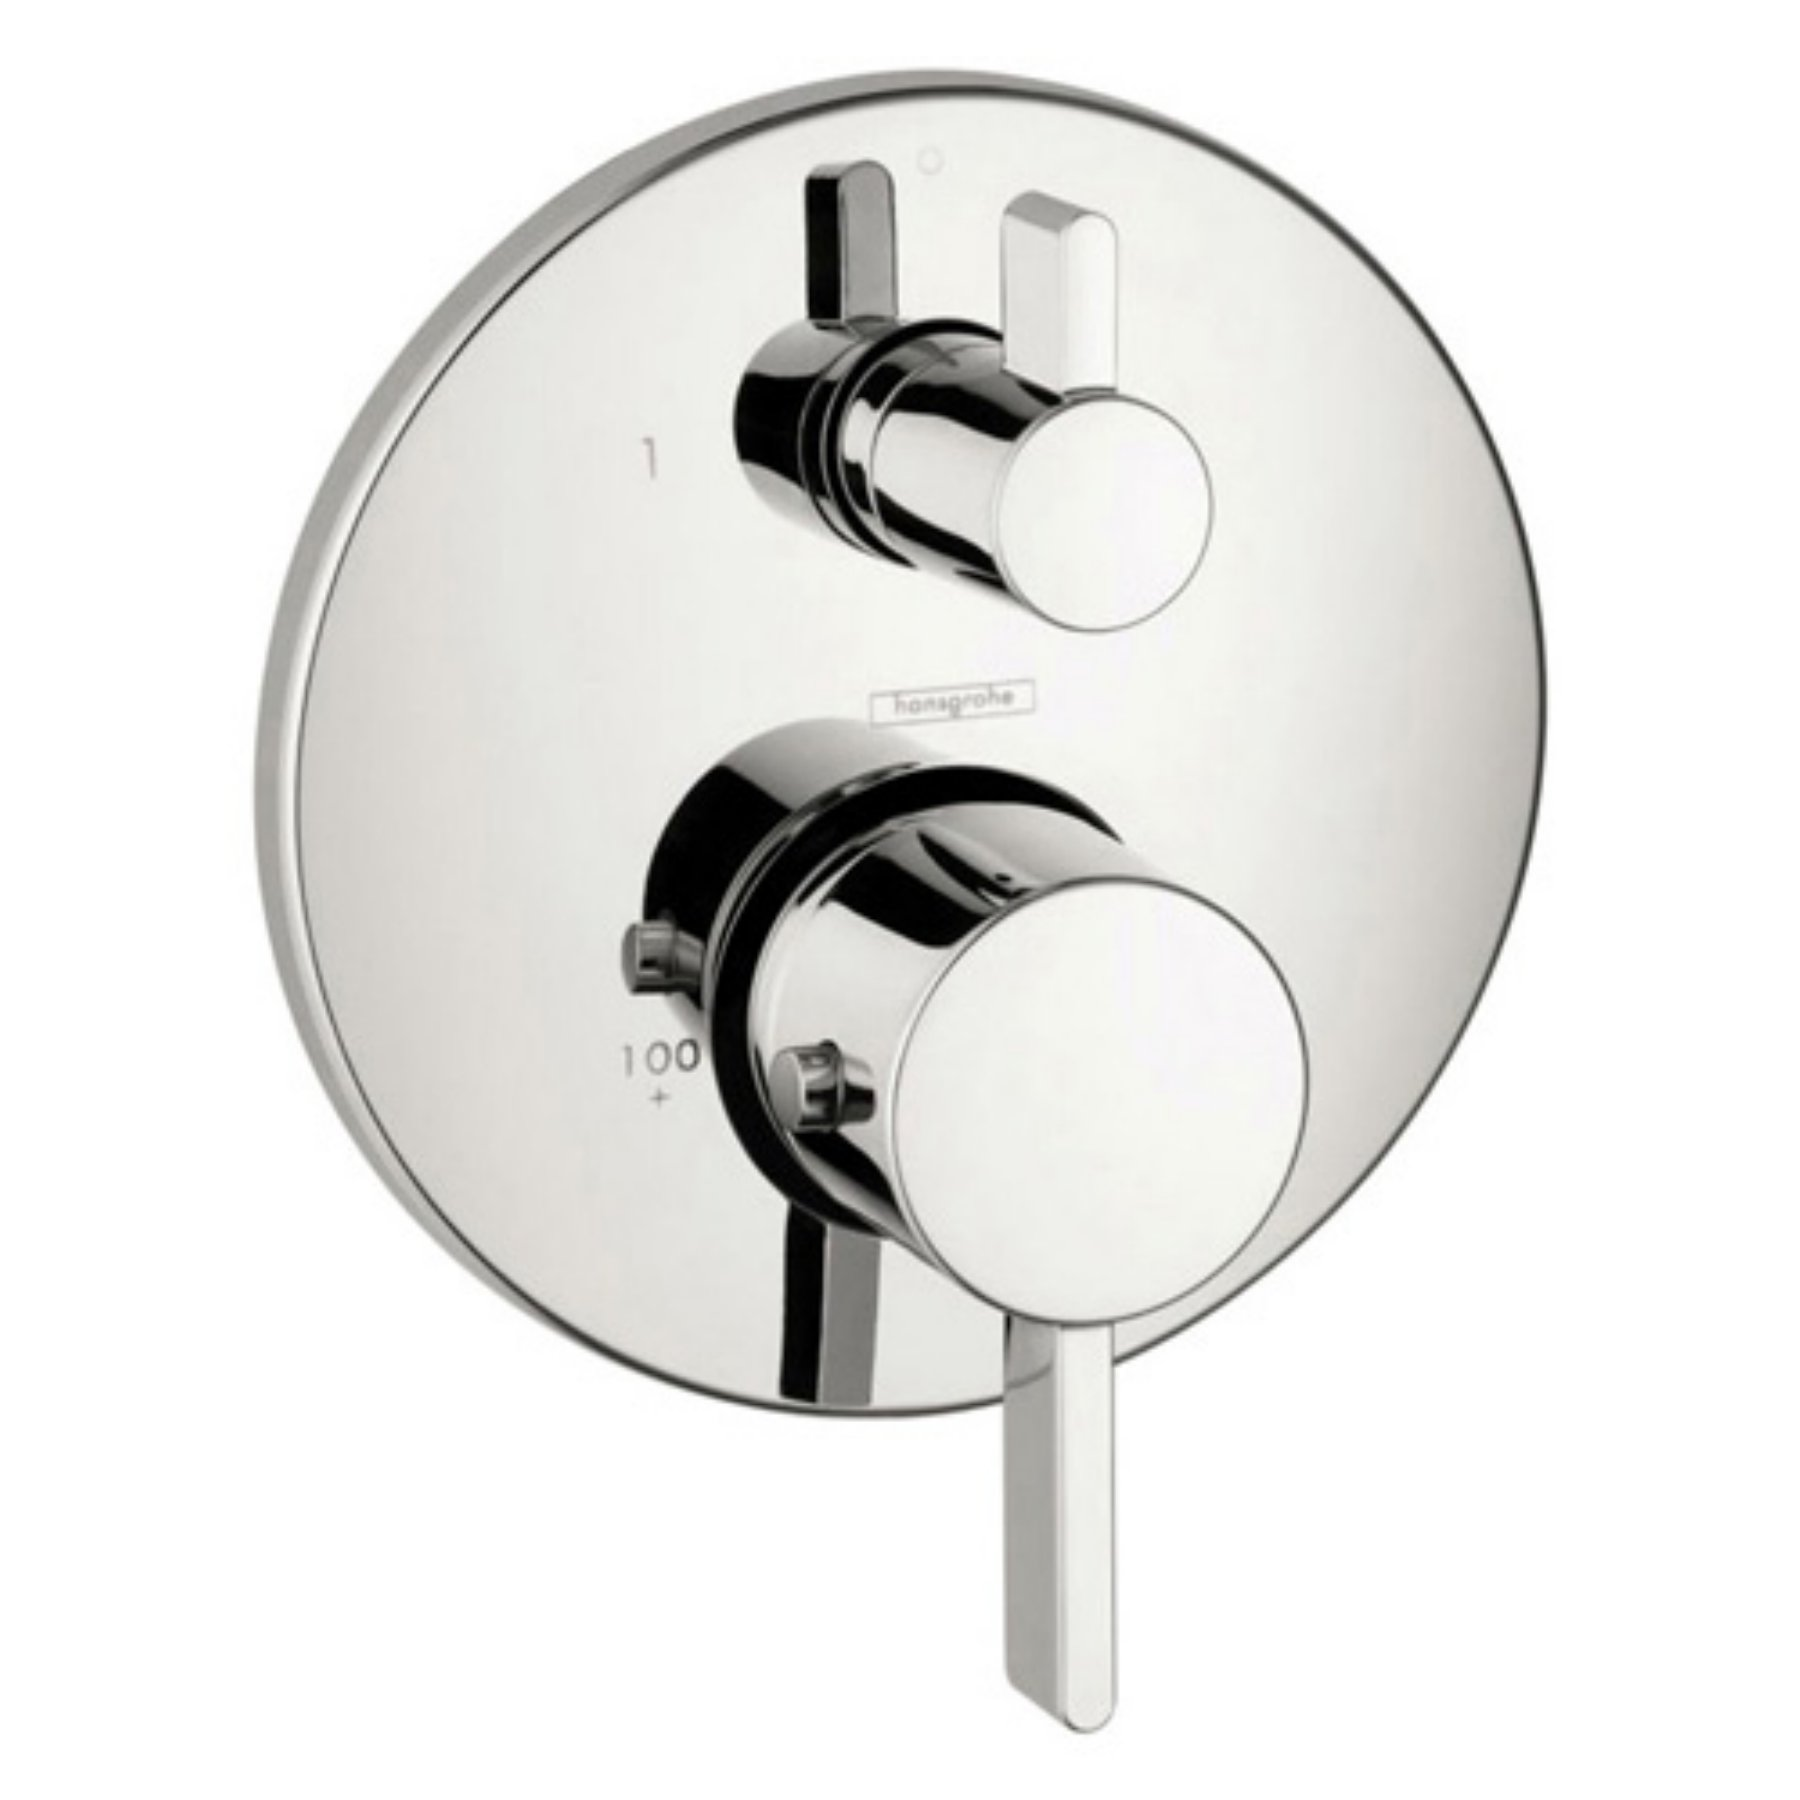 Hansgrohe Ecostat 04231 S Thermostatic Valve Trim With Volume